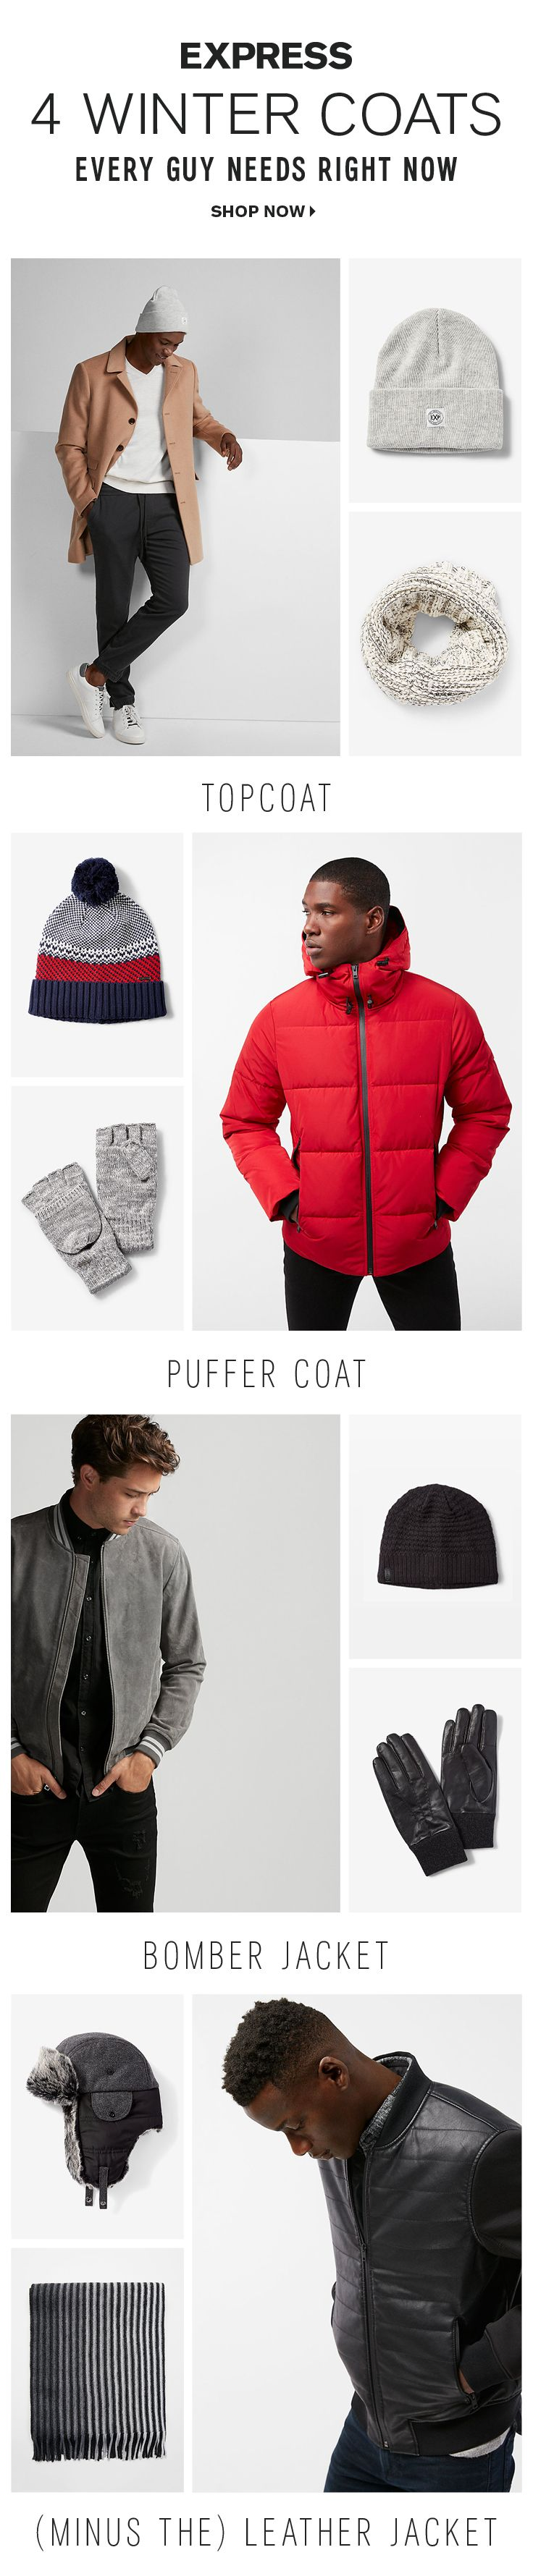 The best winter coats for men are at Express. For the office or a formal party, a wool topcoat is best. For outdoor adventures, try men's puffer coat. A bomber jacket is great for casual days, and a (minus the) leather jacket is the best winter coat for guys with edgy style. Shop them all at Express.